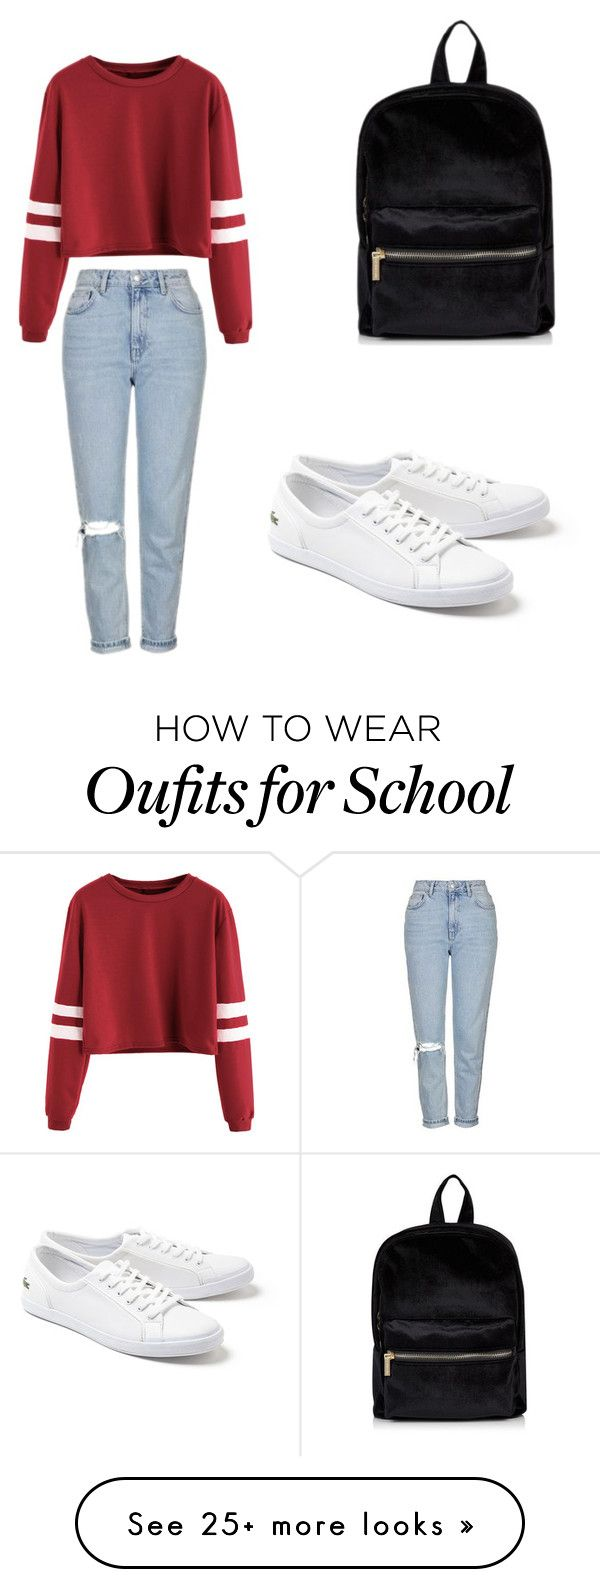 """""""School"""" by scout92703 on Polyvore featuring Topshop and Lacoste"""